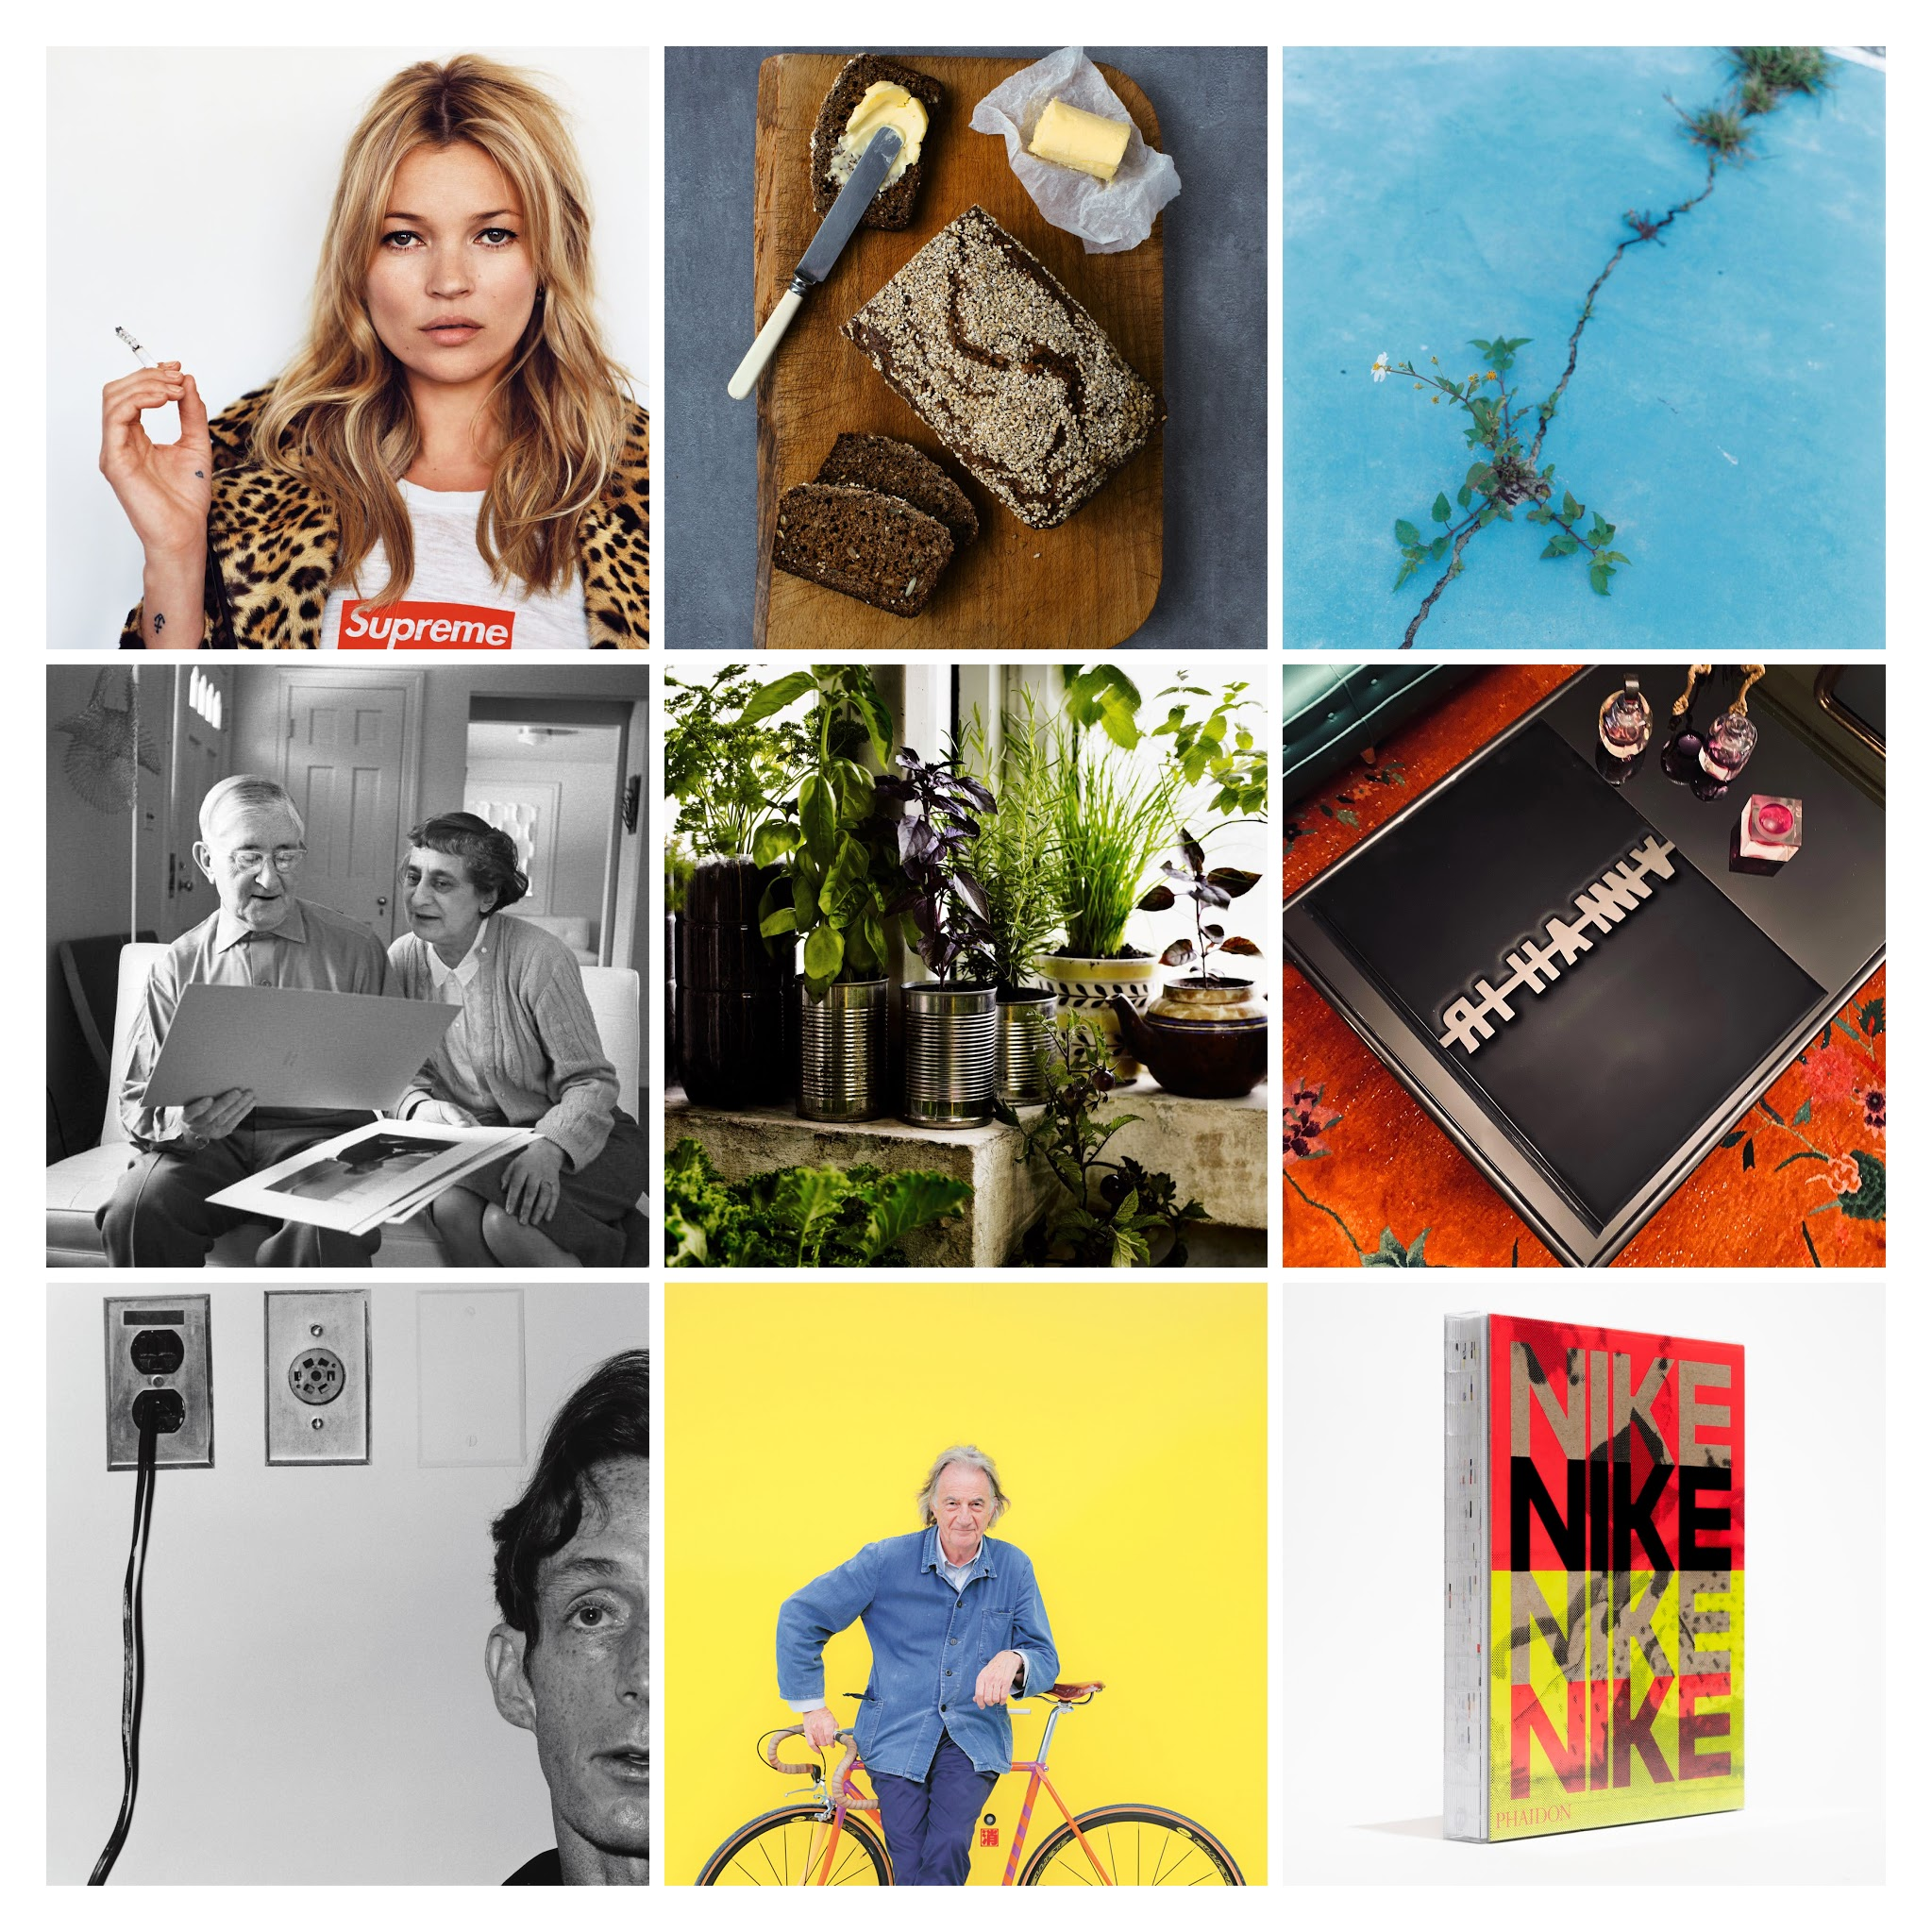 From top right, reading left to right: Kate Moss in Supreme; soda bread in The Irish Cookbook; Rinko Kawauchi, Untitled, from the eyes, the ears, 2005, in Flower; Anni and Josef Albers from Anni & Josef Albers; a container garden from Grow Fruit & Vegetables in Pots; Rihanna: Queen Size; John McKendry, 1975 by Robert Mapplethorpe, from Robert Mapplethorpe; Paul Smith from Paul Smith; Nike: Better is Temporary